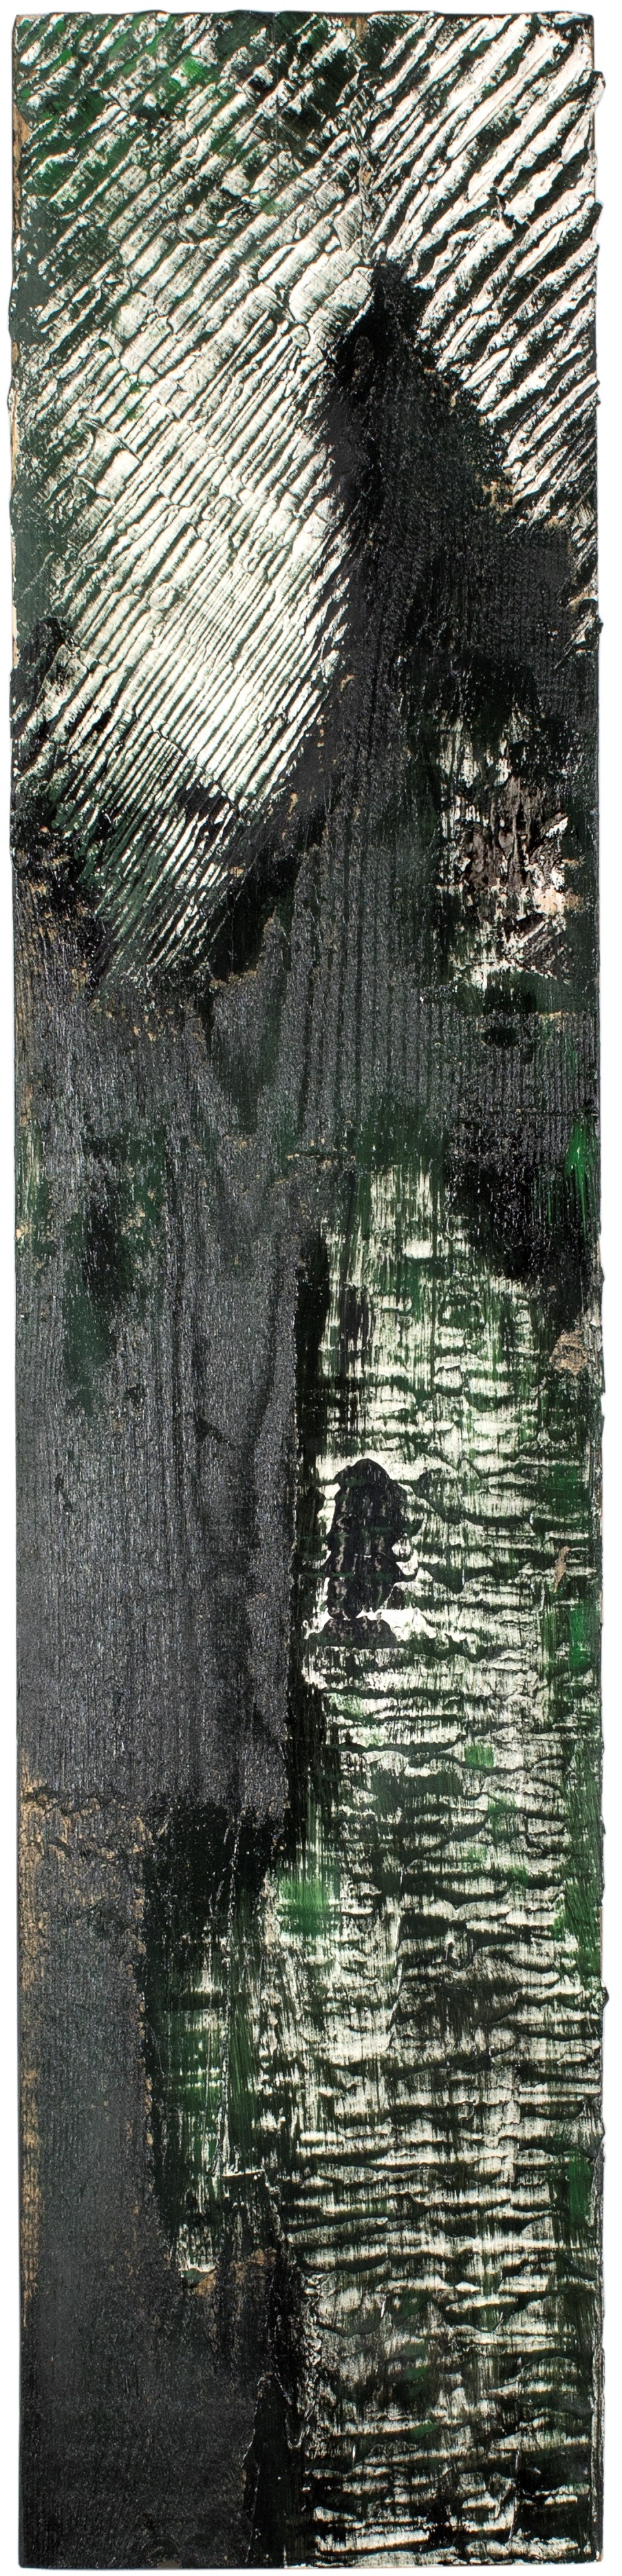 TRACCE#1 - Plaster and enamel on rough spruce board, 21.5x94cm - AVAILABLE